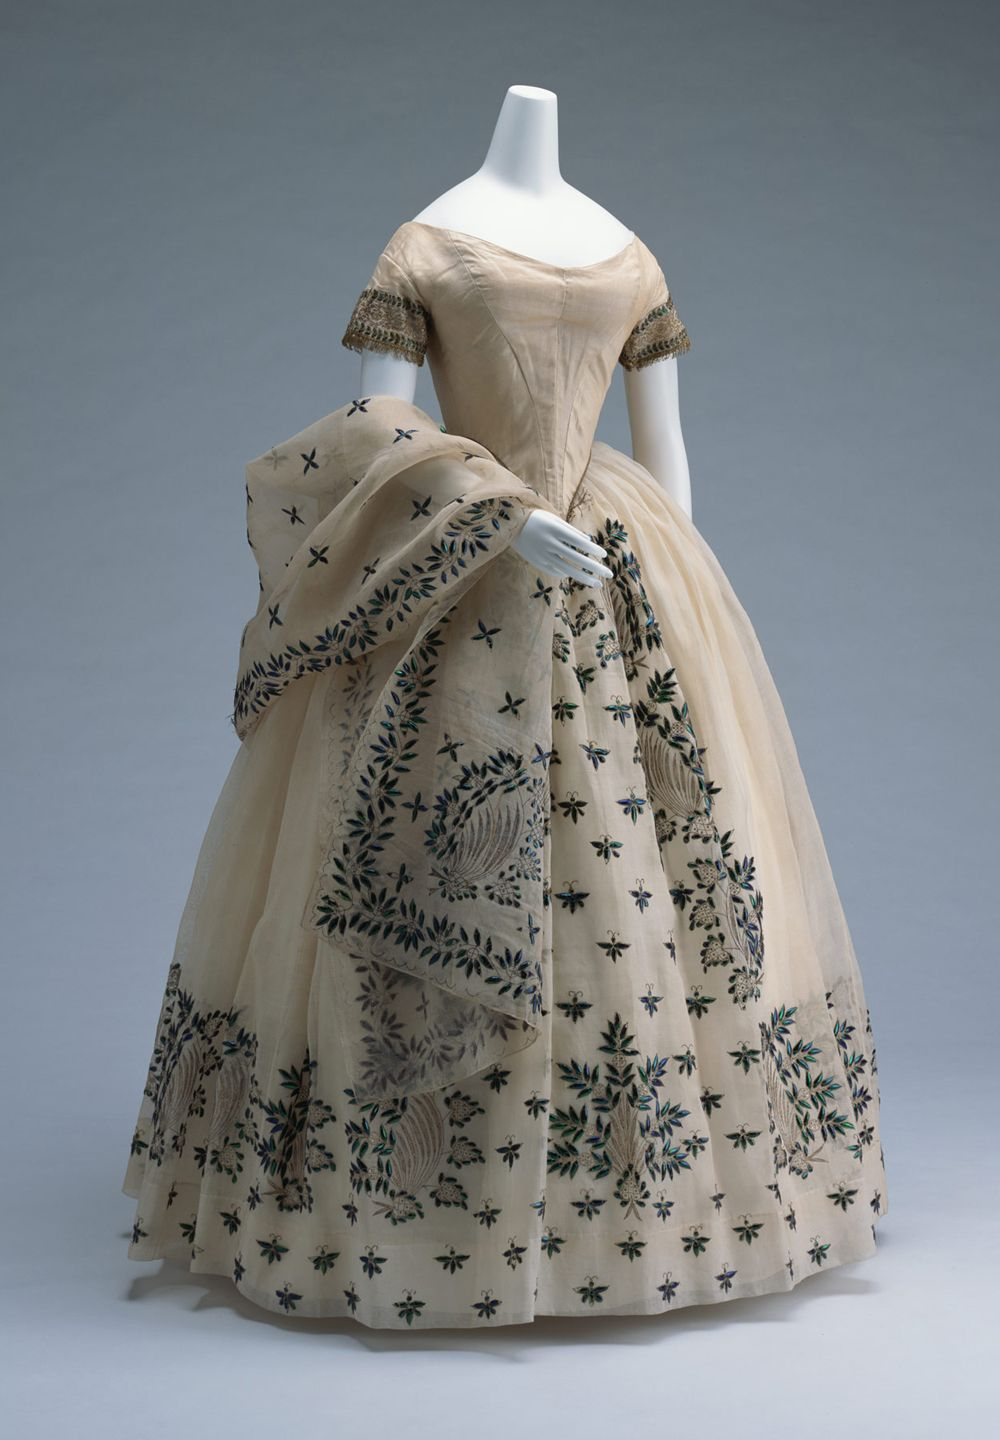 Dresses Worn In 1800s The One Above Is Probably My Favorite Of The Lot The Simple Colors Victorian Fashion Historical Dresses Vintage Dresses [ 1440 x 1000 Pixel ]